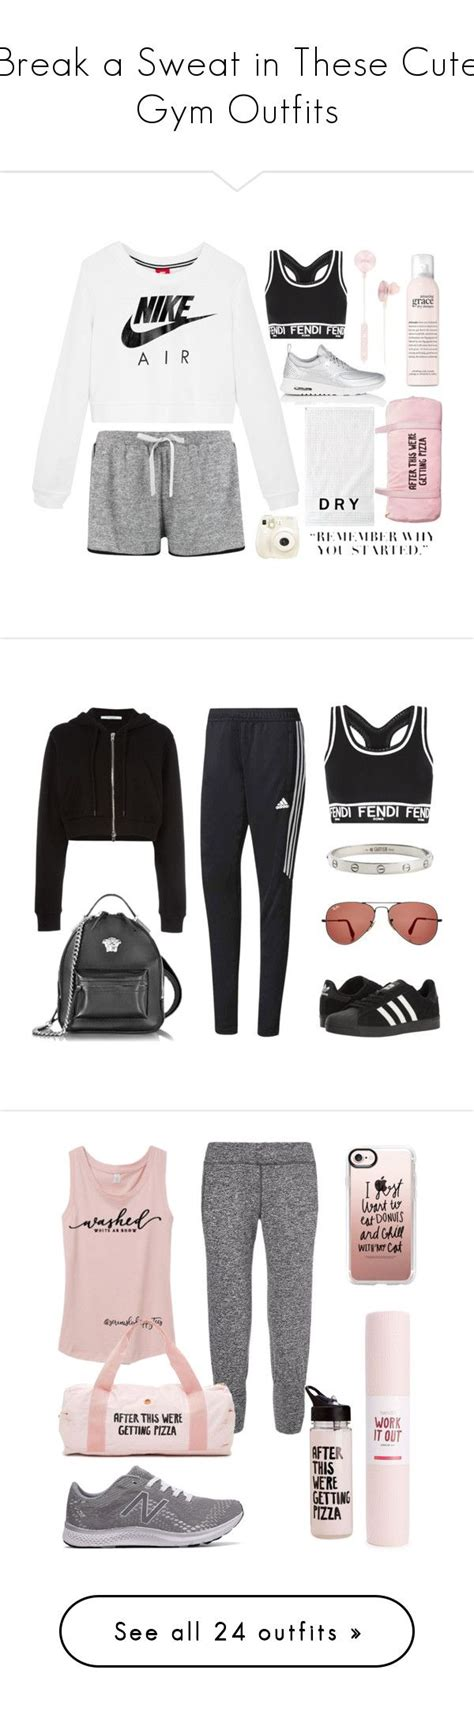 the philosophy gym 25 0747232717 best 25 gym outfits ideas on sport outfits gym wear and workout outfits